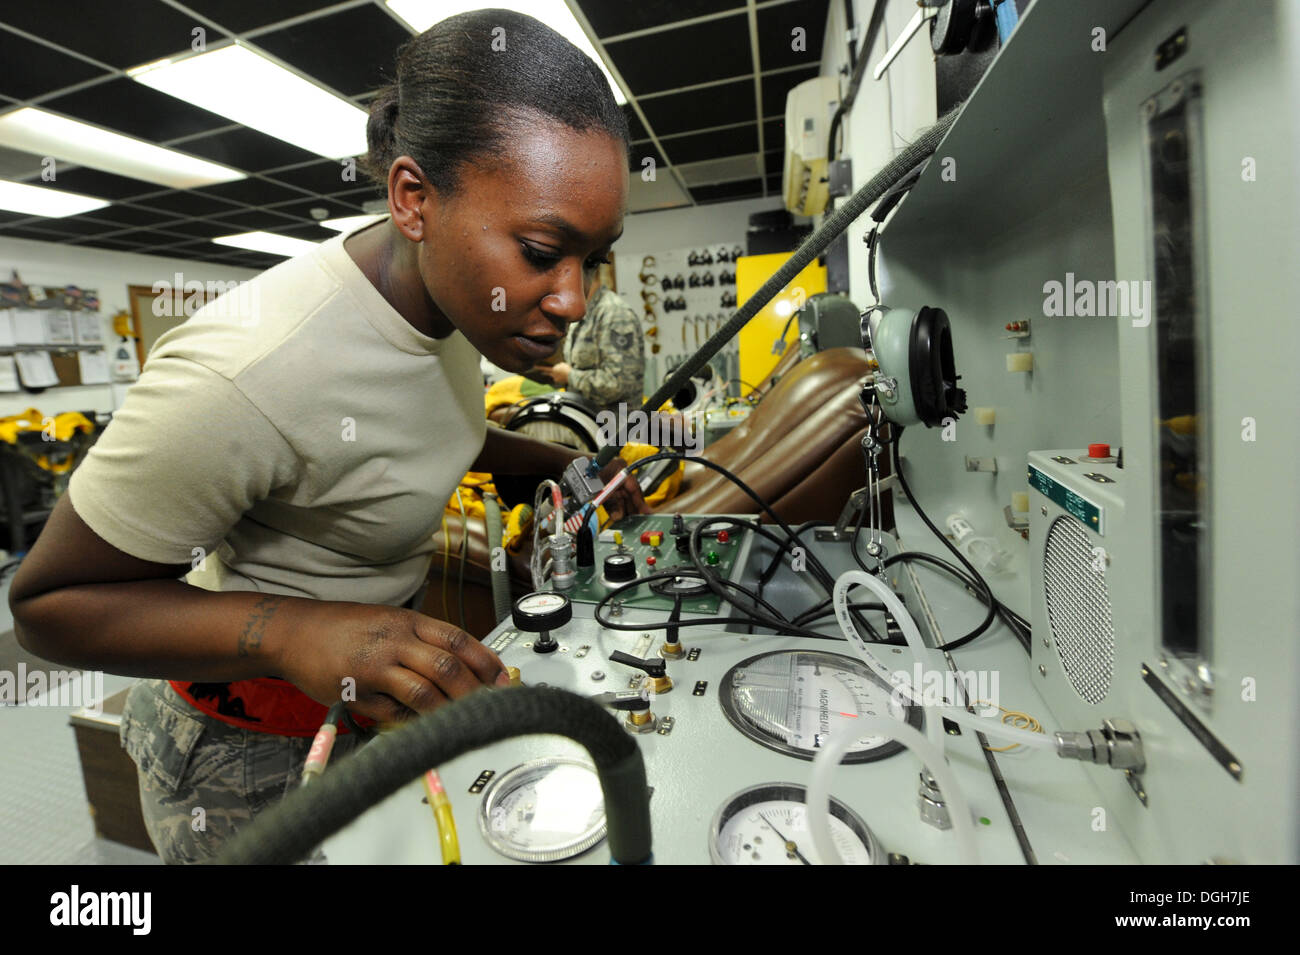 U.S. Staff Sgt. Jasmine Chambers, 99th Expeditionary Reconnaissance Squadron physiological support detachment technician, checks a pressure suit for air leaks during a post-flight inspection at an undisclosed location in Southwest Asia, Oct. 7, 2013. The - Stock Image